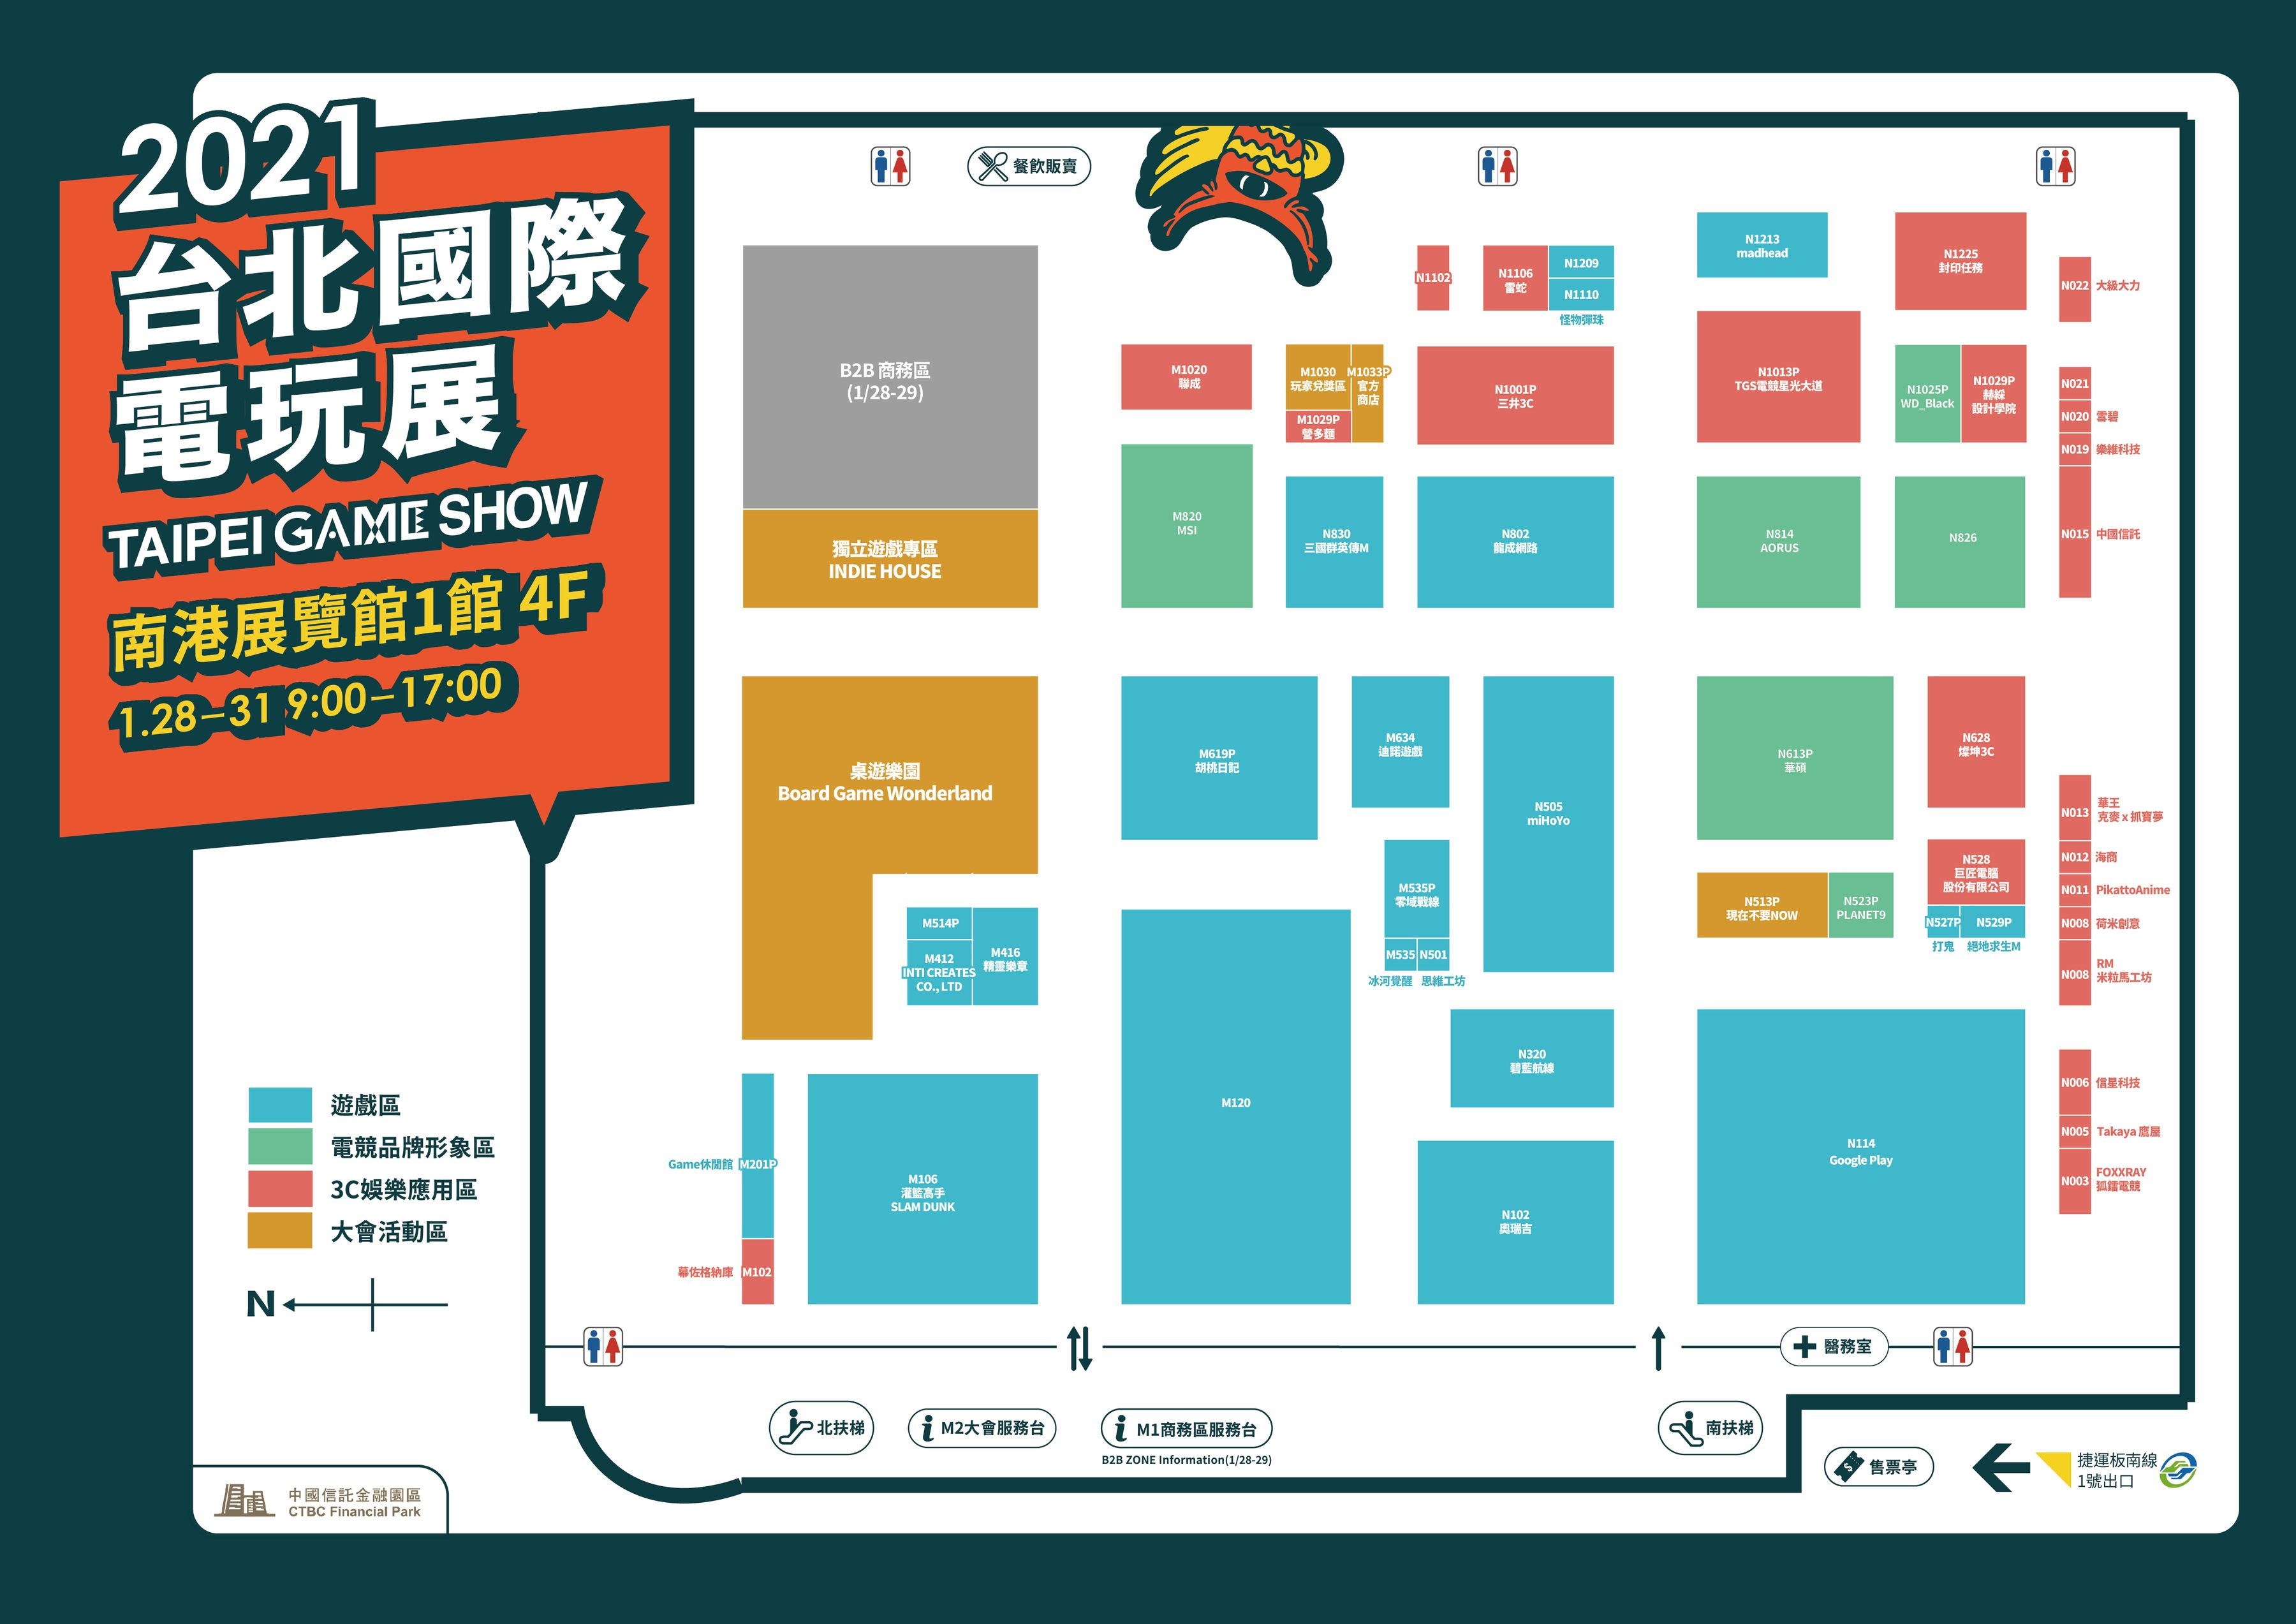 TaipeiGameShow2021-FloorPlan